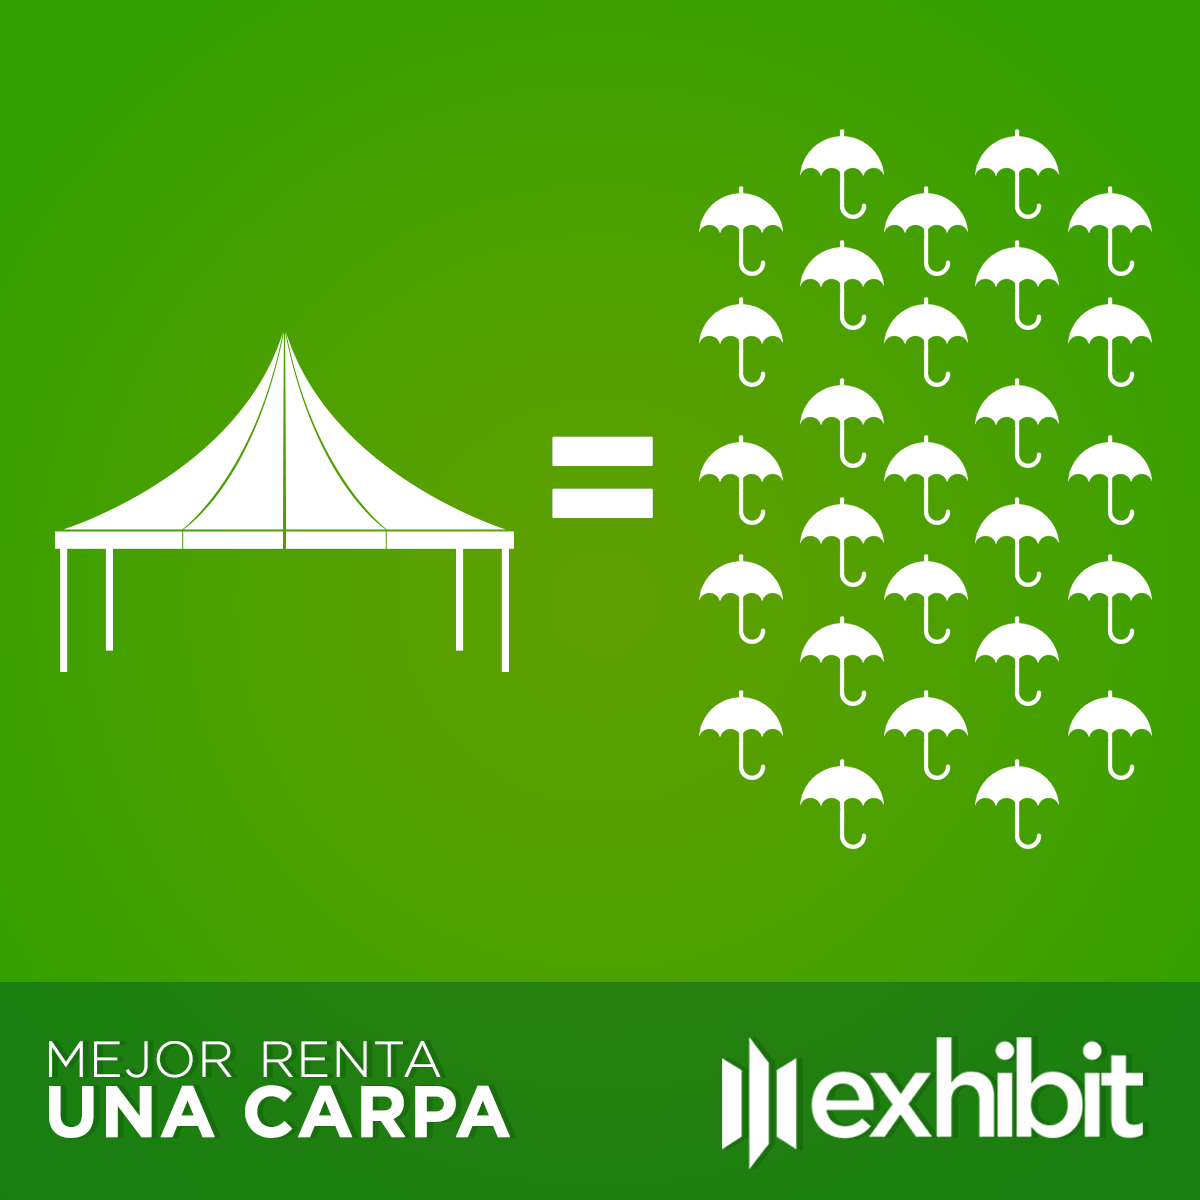 Exhibit una renta, una carpa